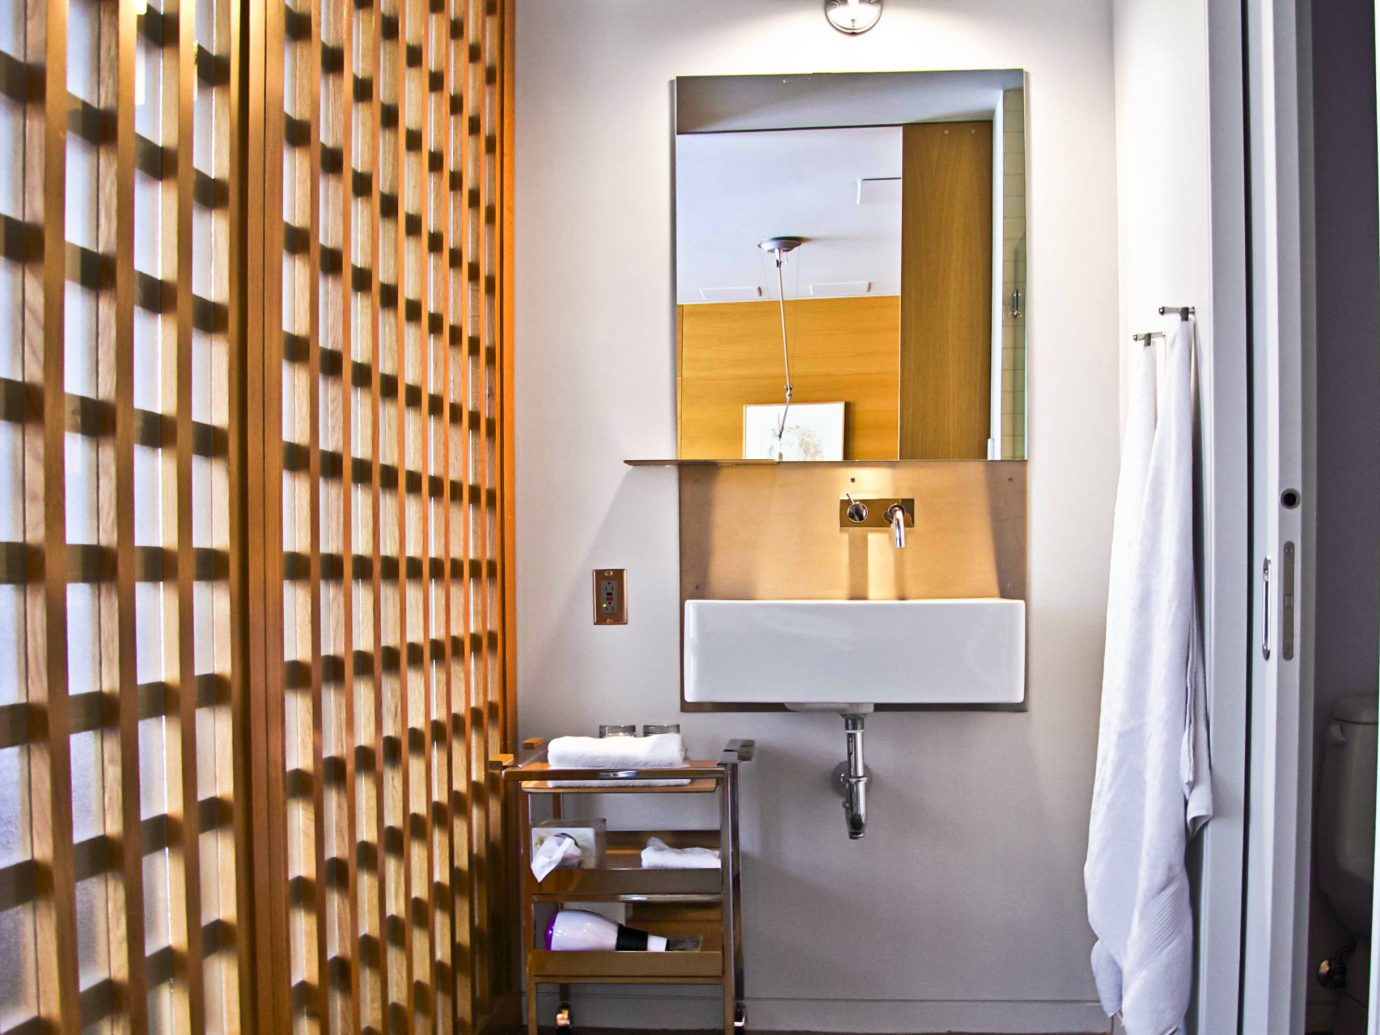 Bath Boutique Hotels Chicago City Design Hotels Modern wall floor indoor room interior design home bathroom window covering apartment hall furniture